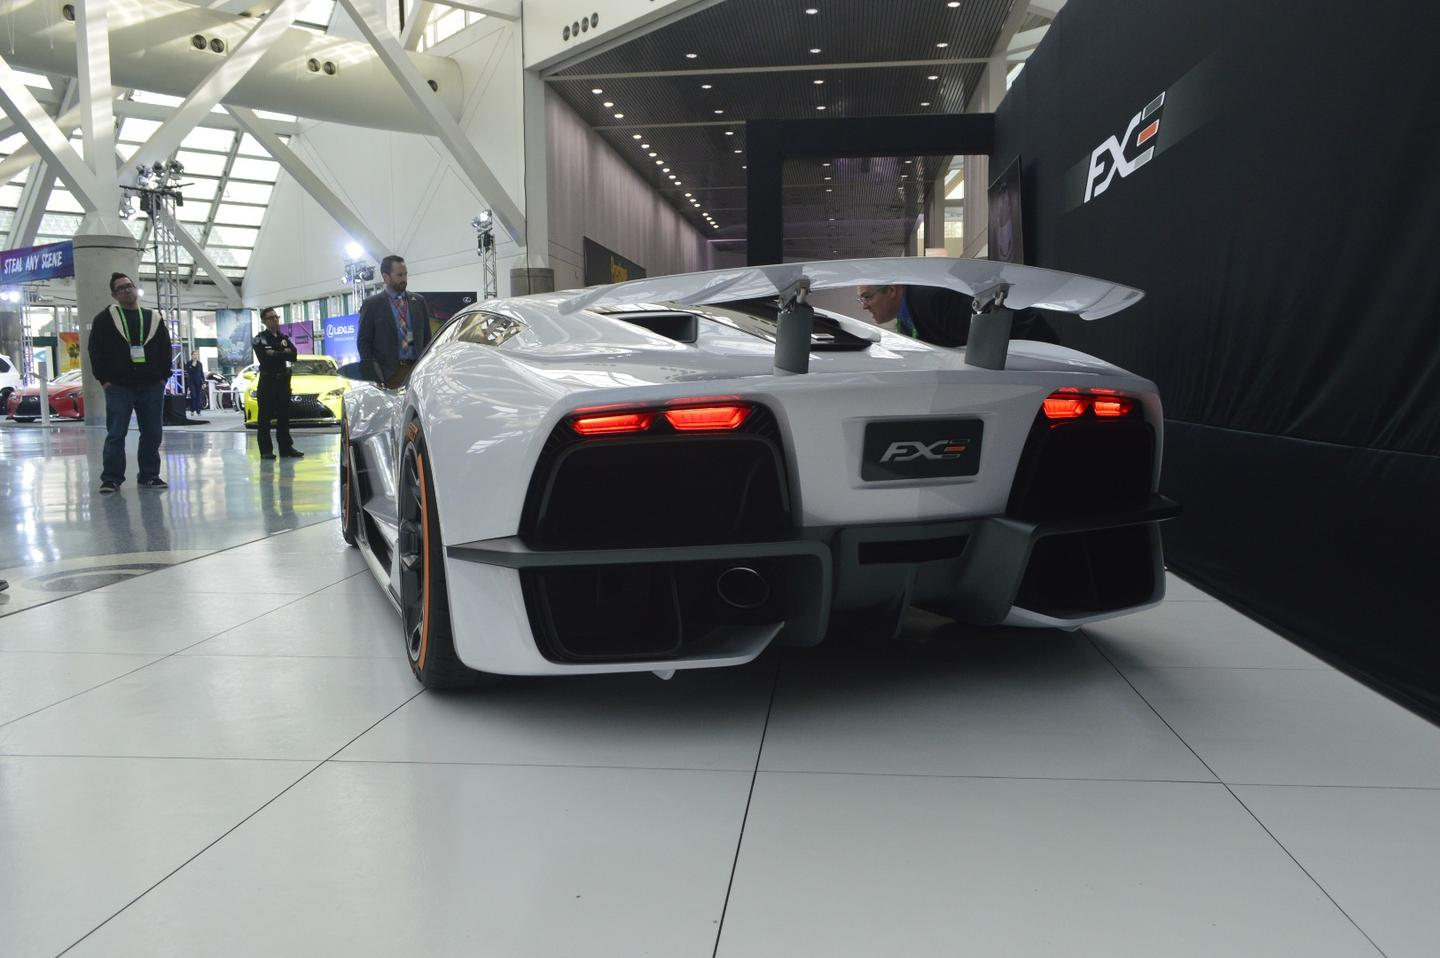 Aria's new FXE hypercar  made its debut at the 2017 LA Auto Show